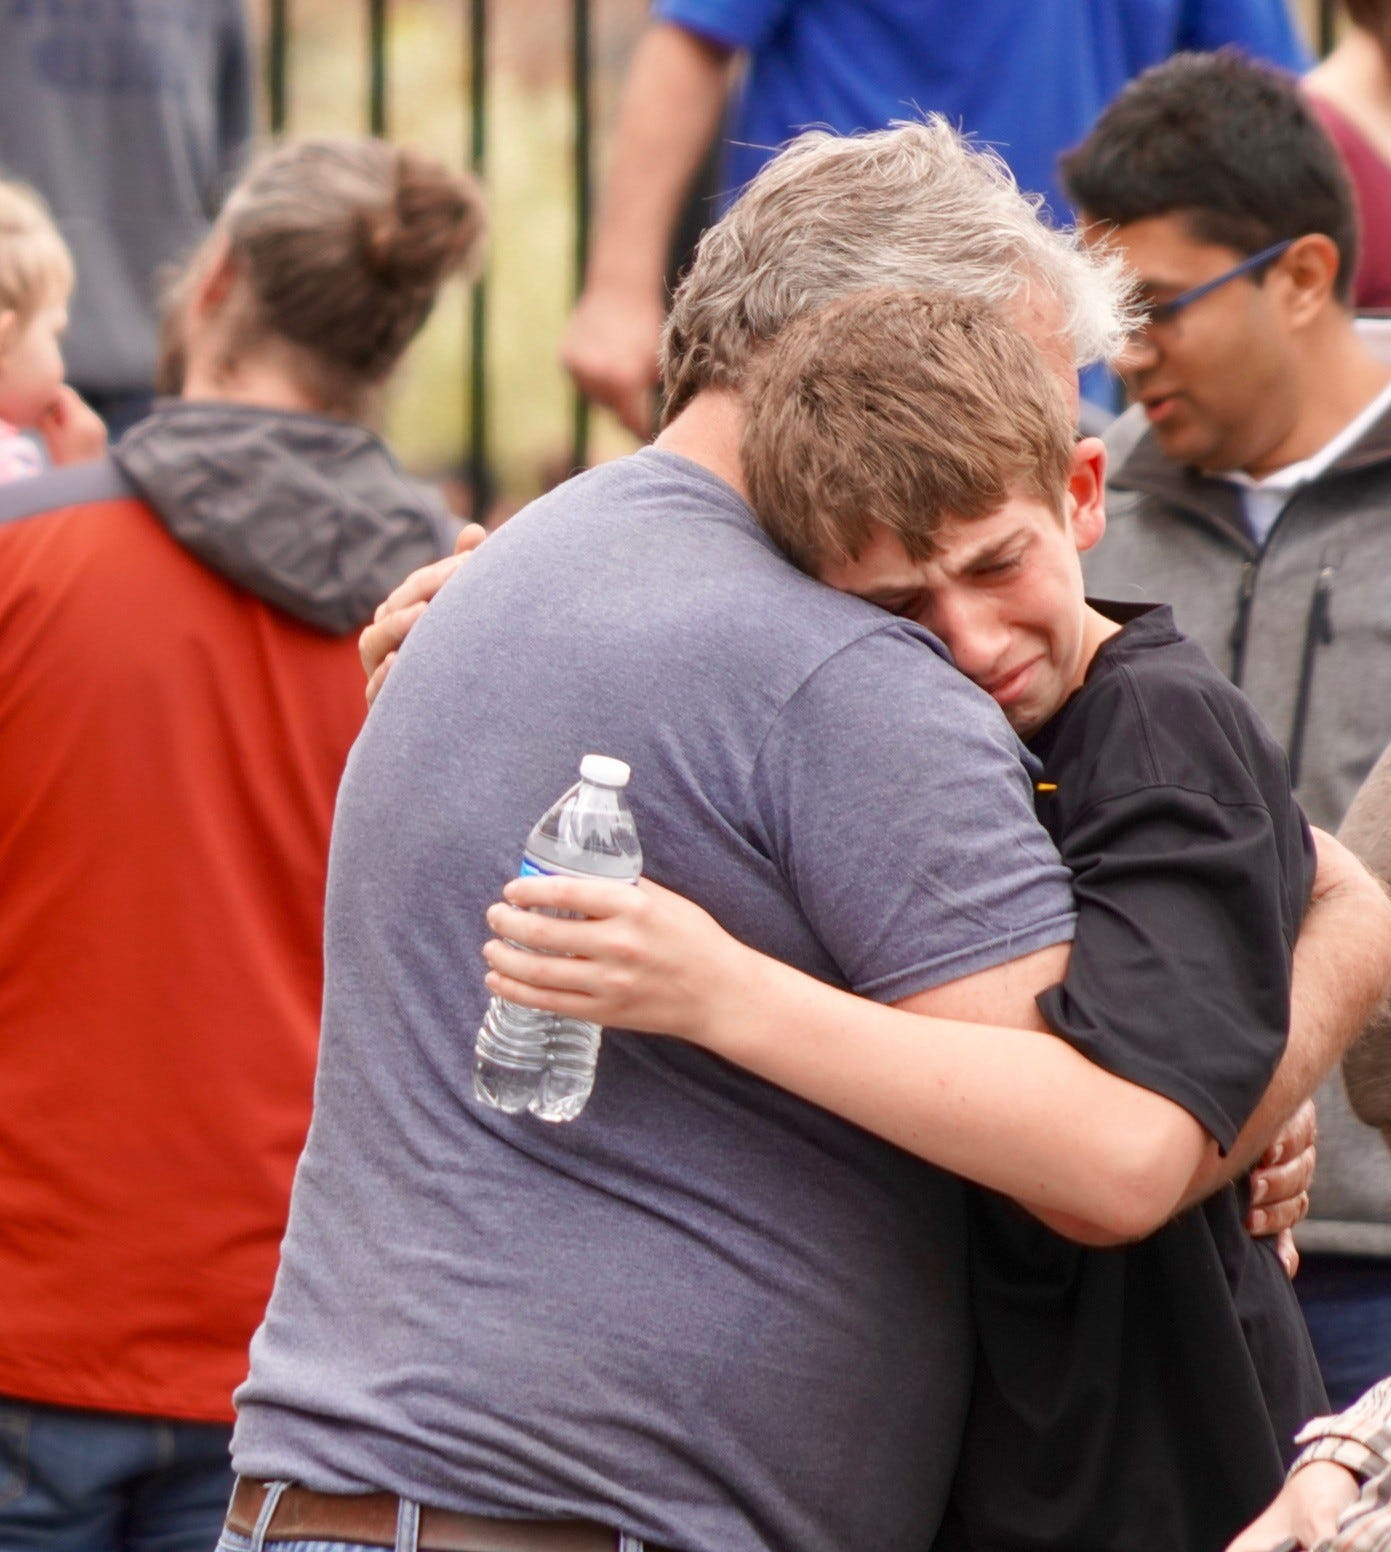 Colorado School Shooting Platte: Suspect ID'd In Colorado School Shooting That Leaves 1